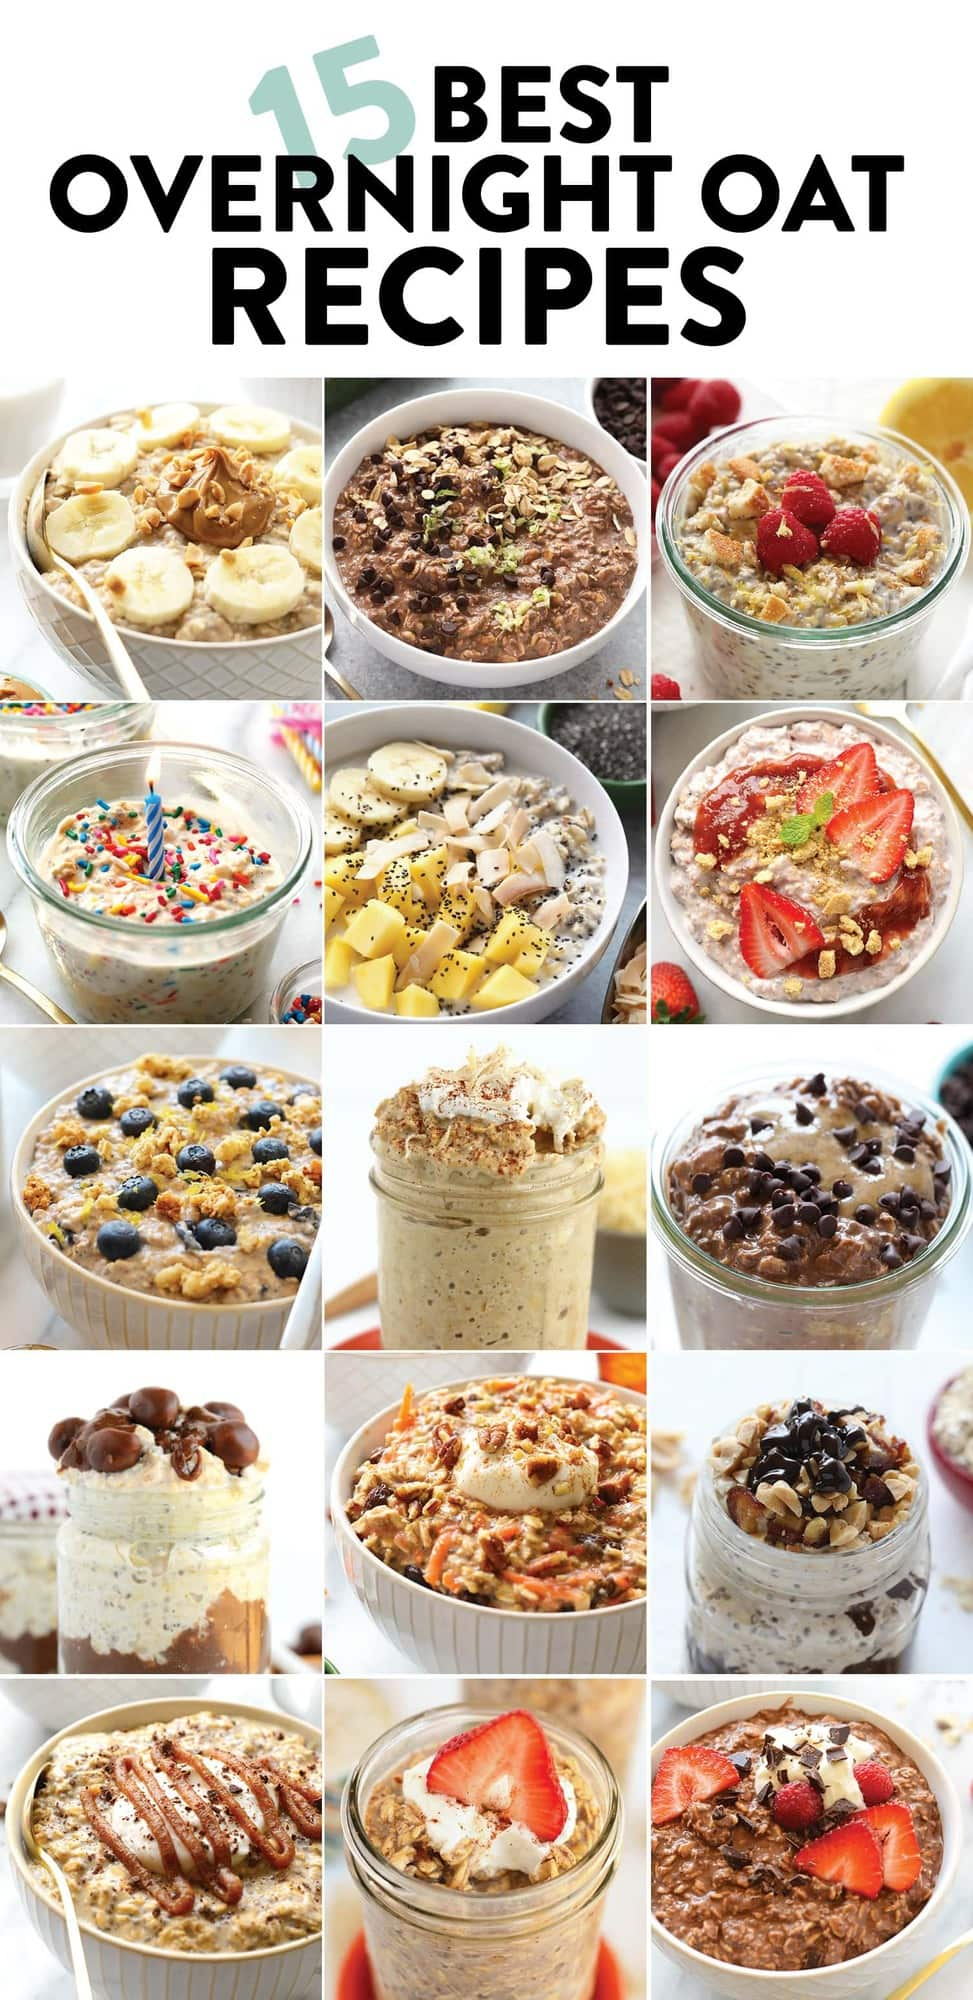 A photo collage of overnight oatmeal recipes